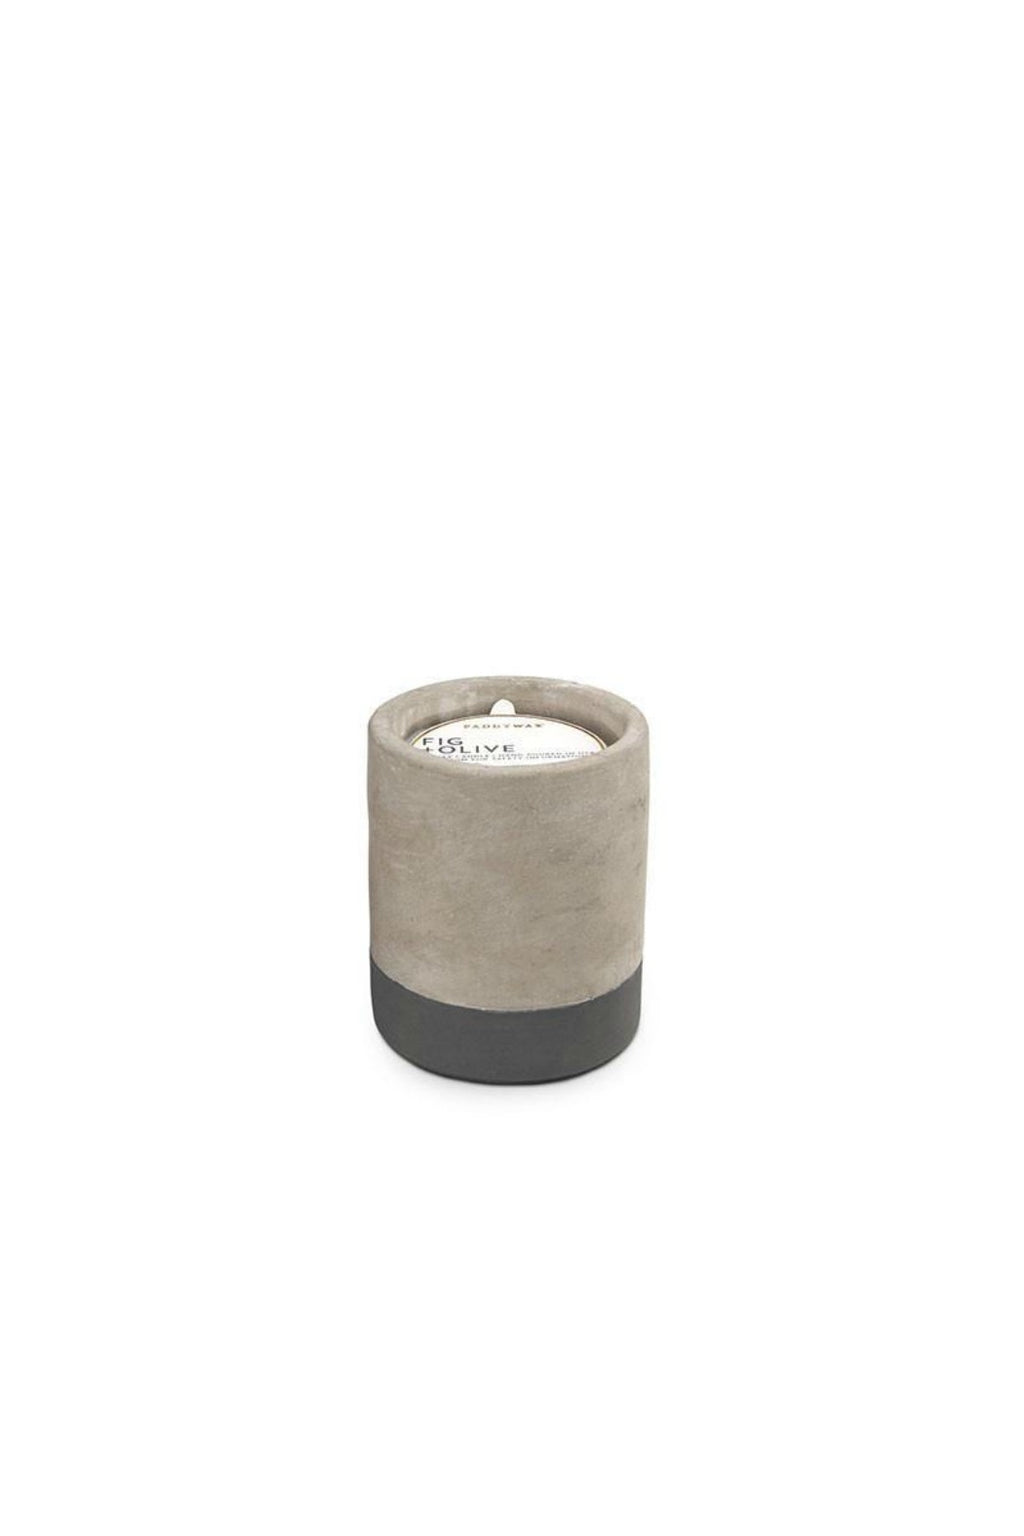 Pattywax Urban Concrete -  Fig & Olive Candle